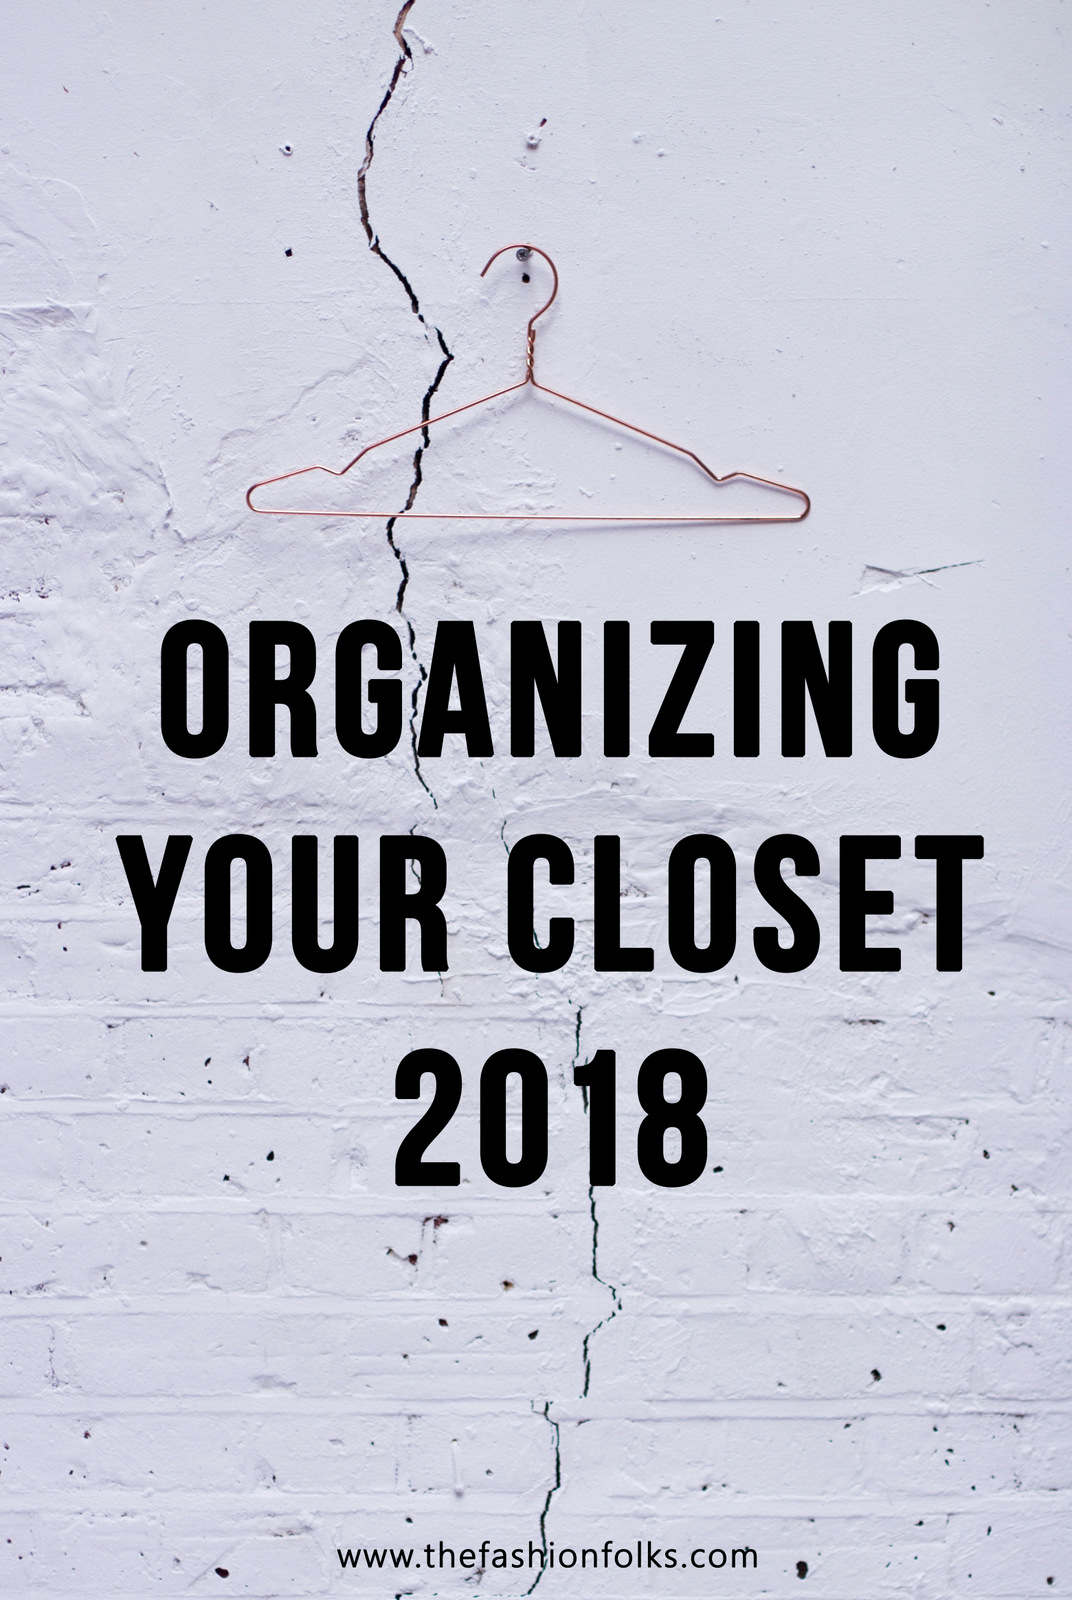 Organizing Your Closet 2018